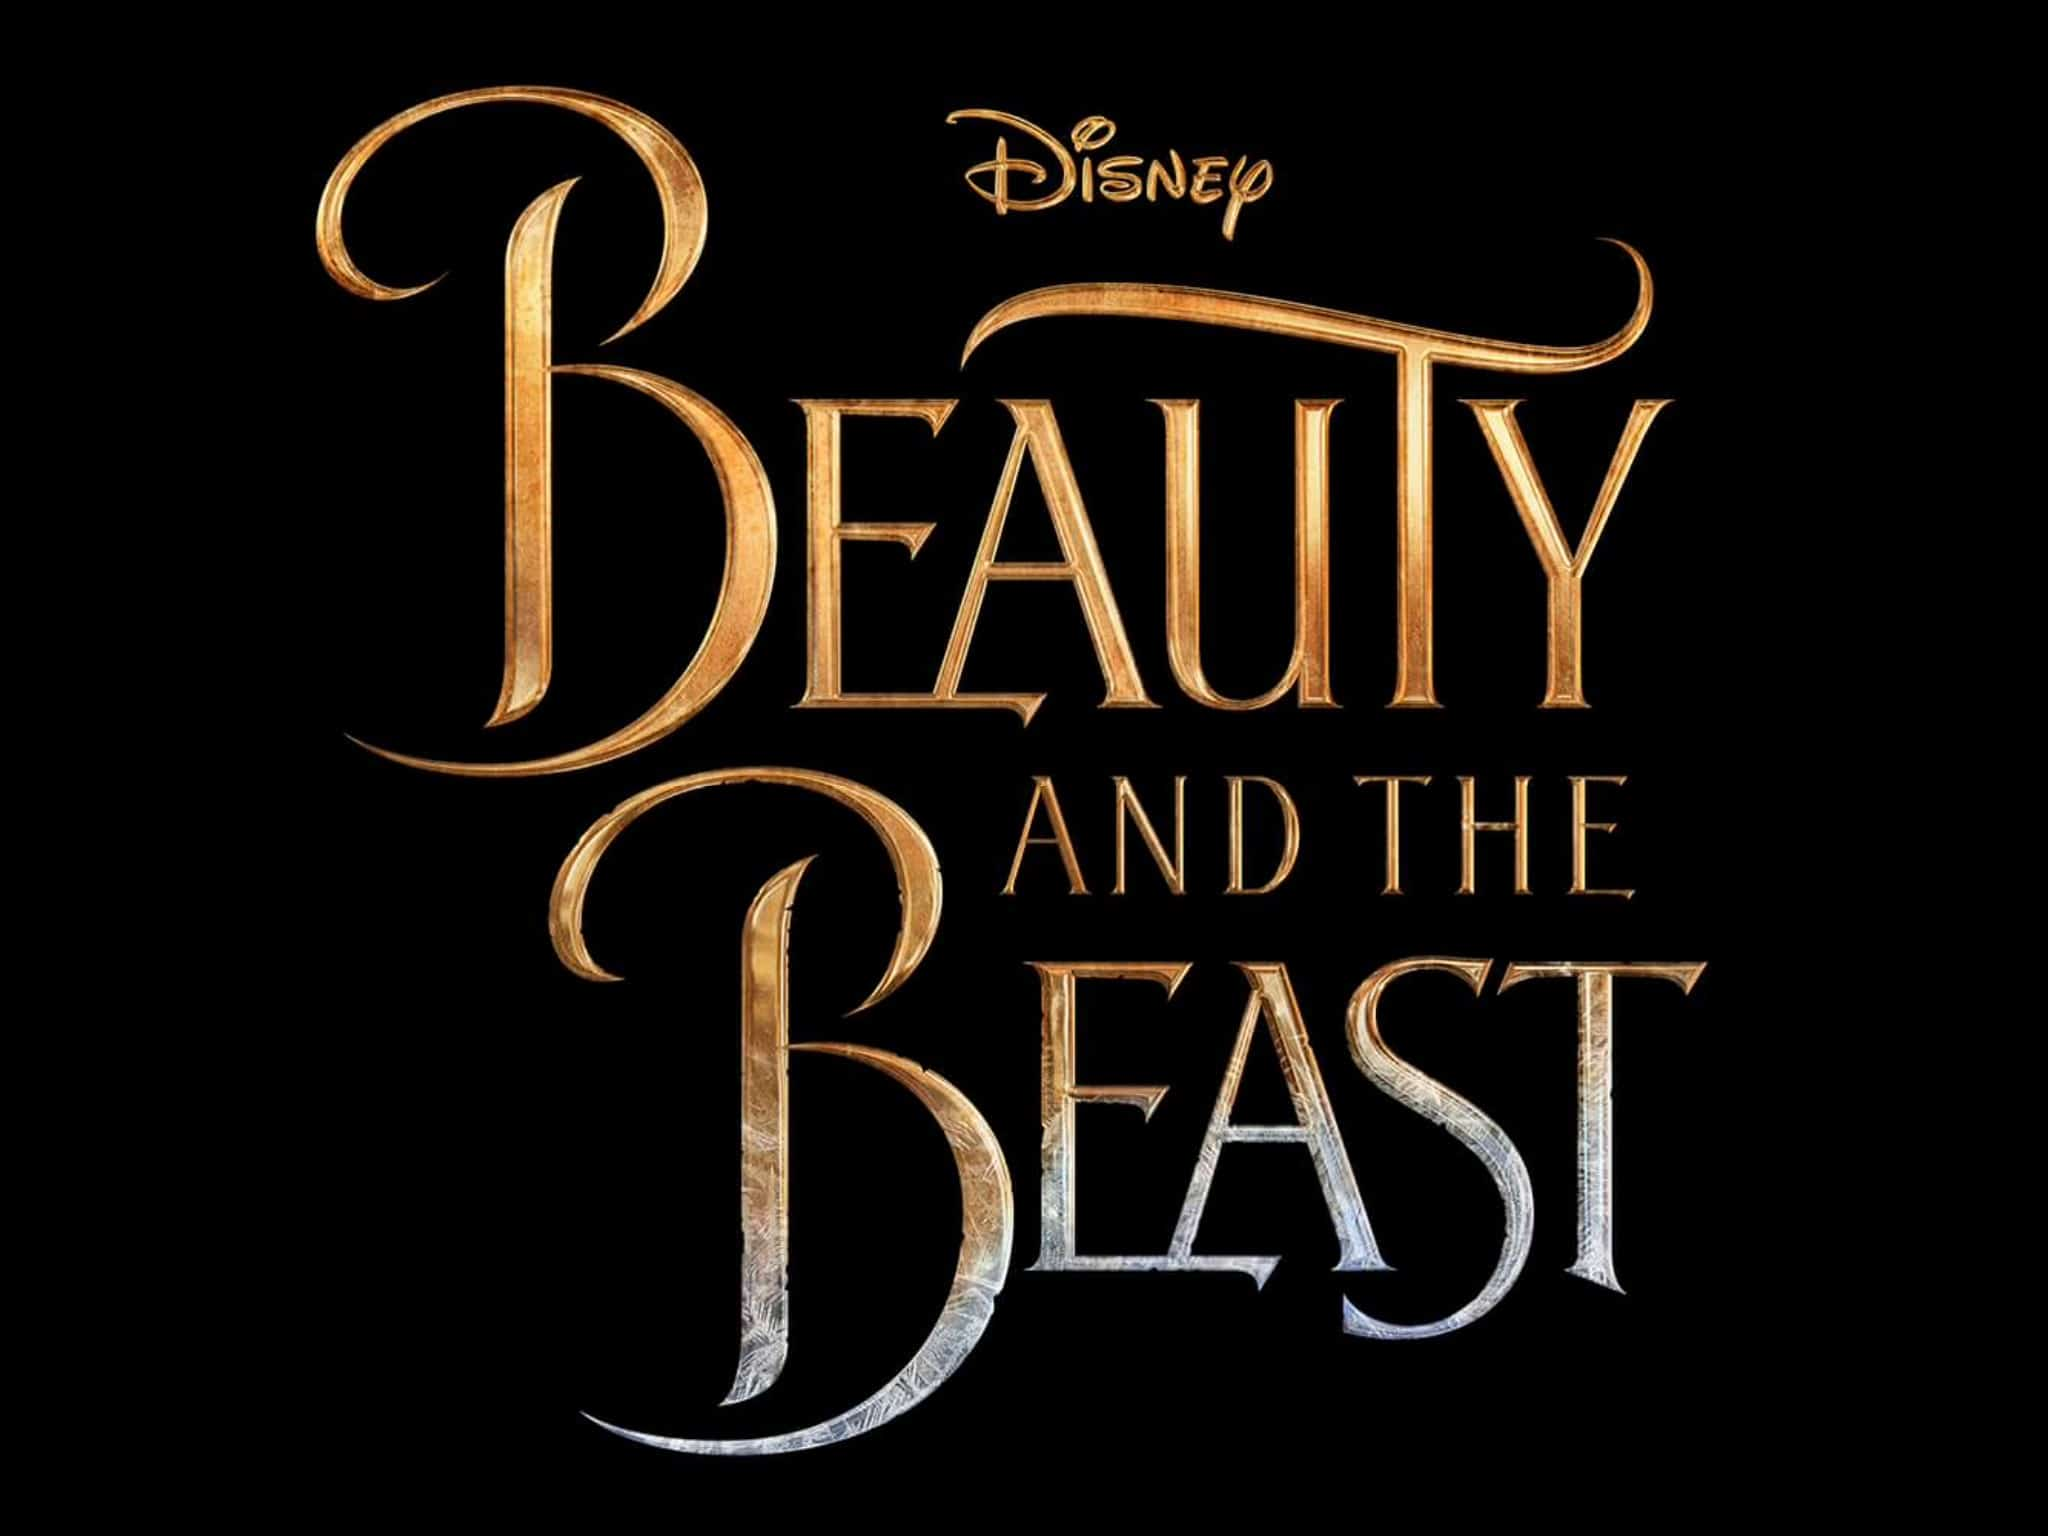 Live Action Beauty and the Beast Promo